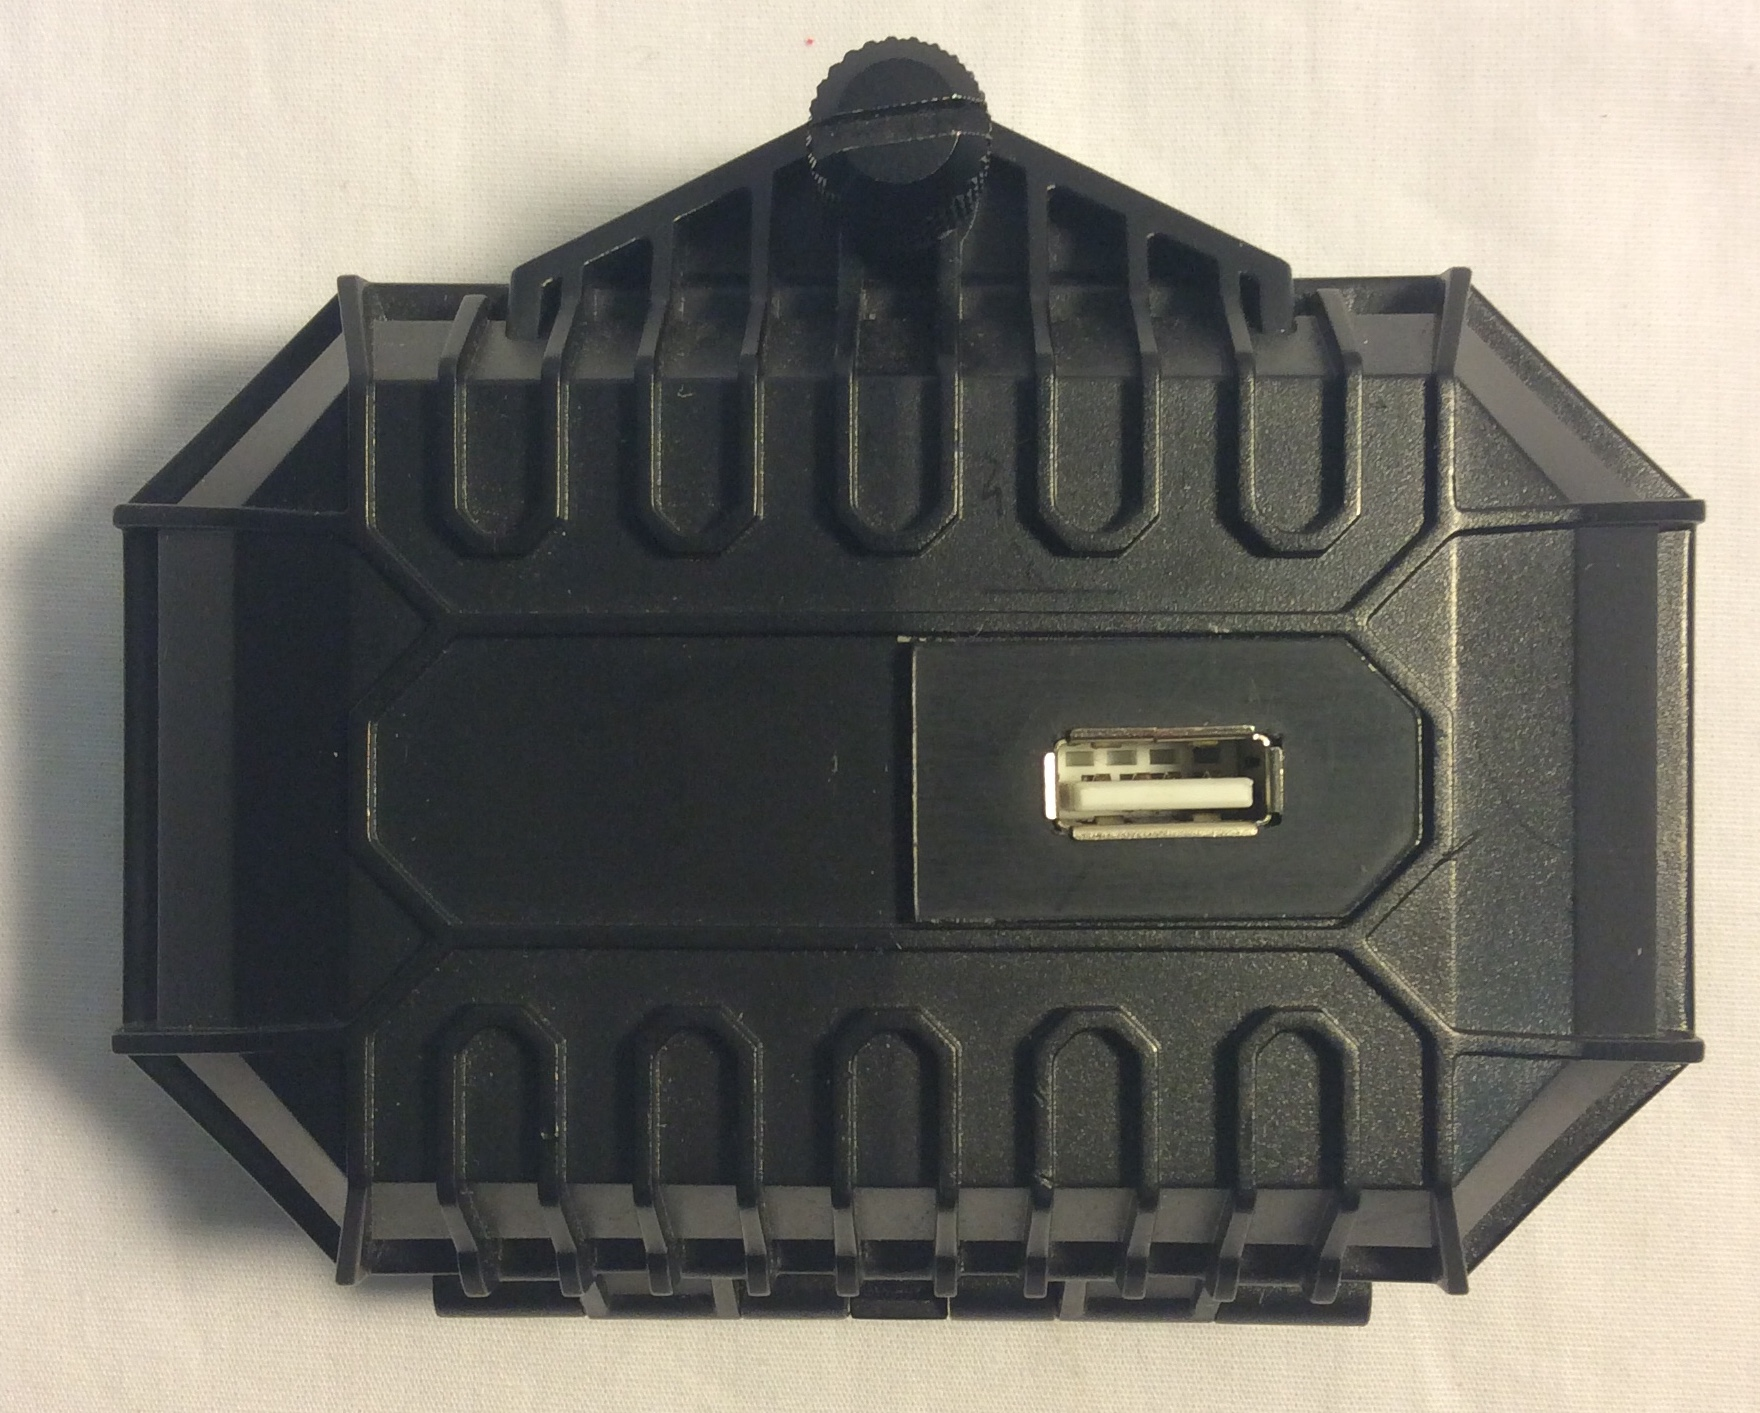 Black plastic box with USB plug